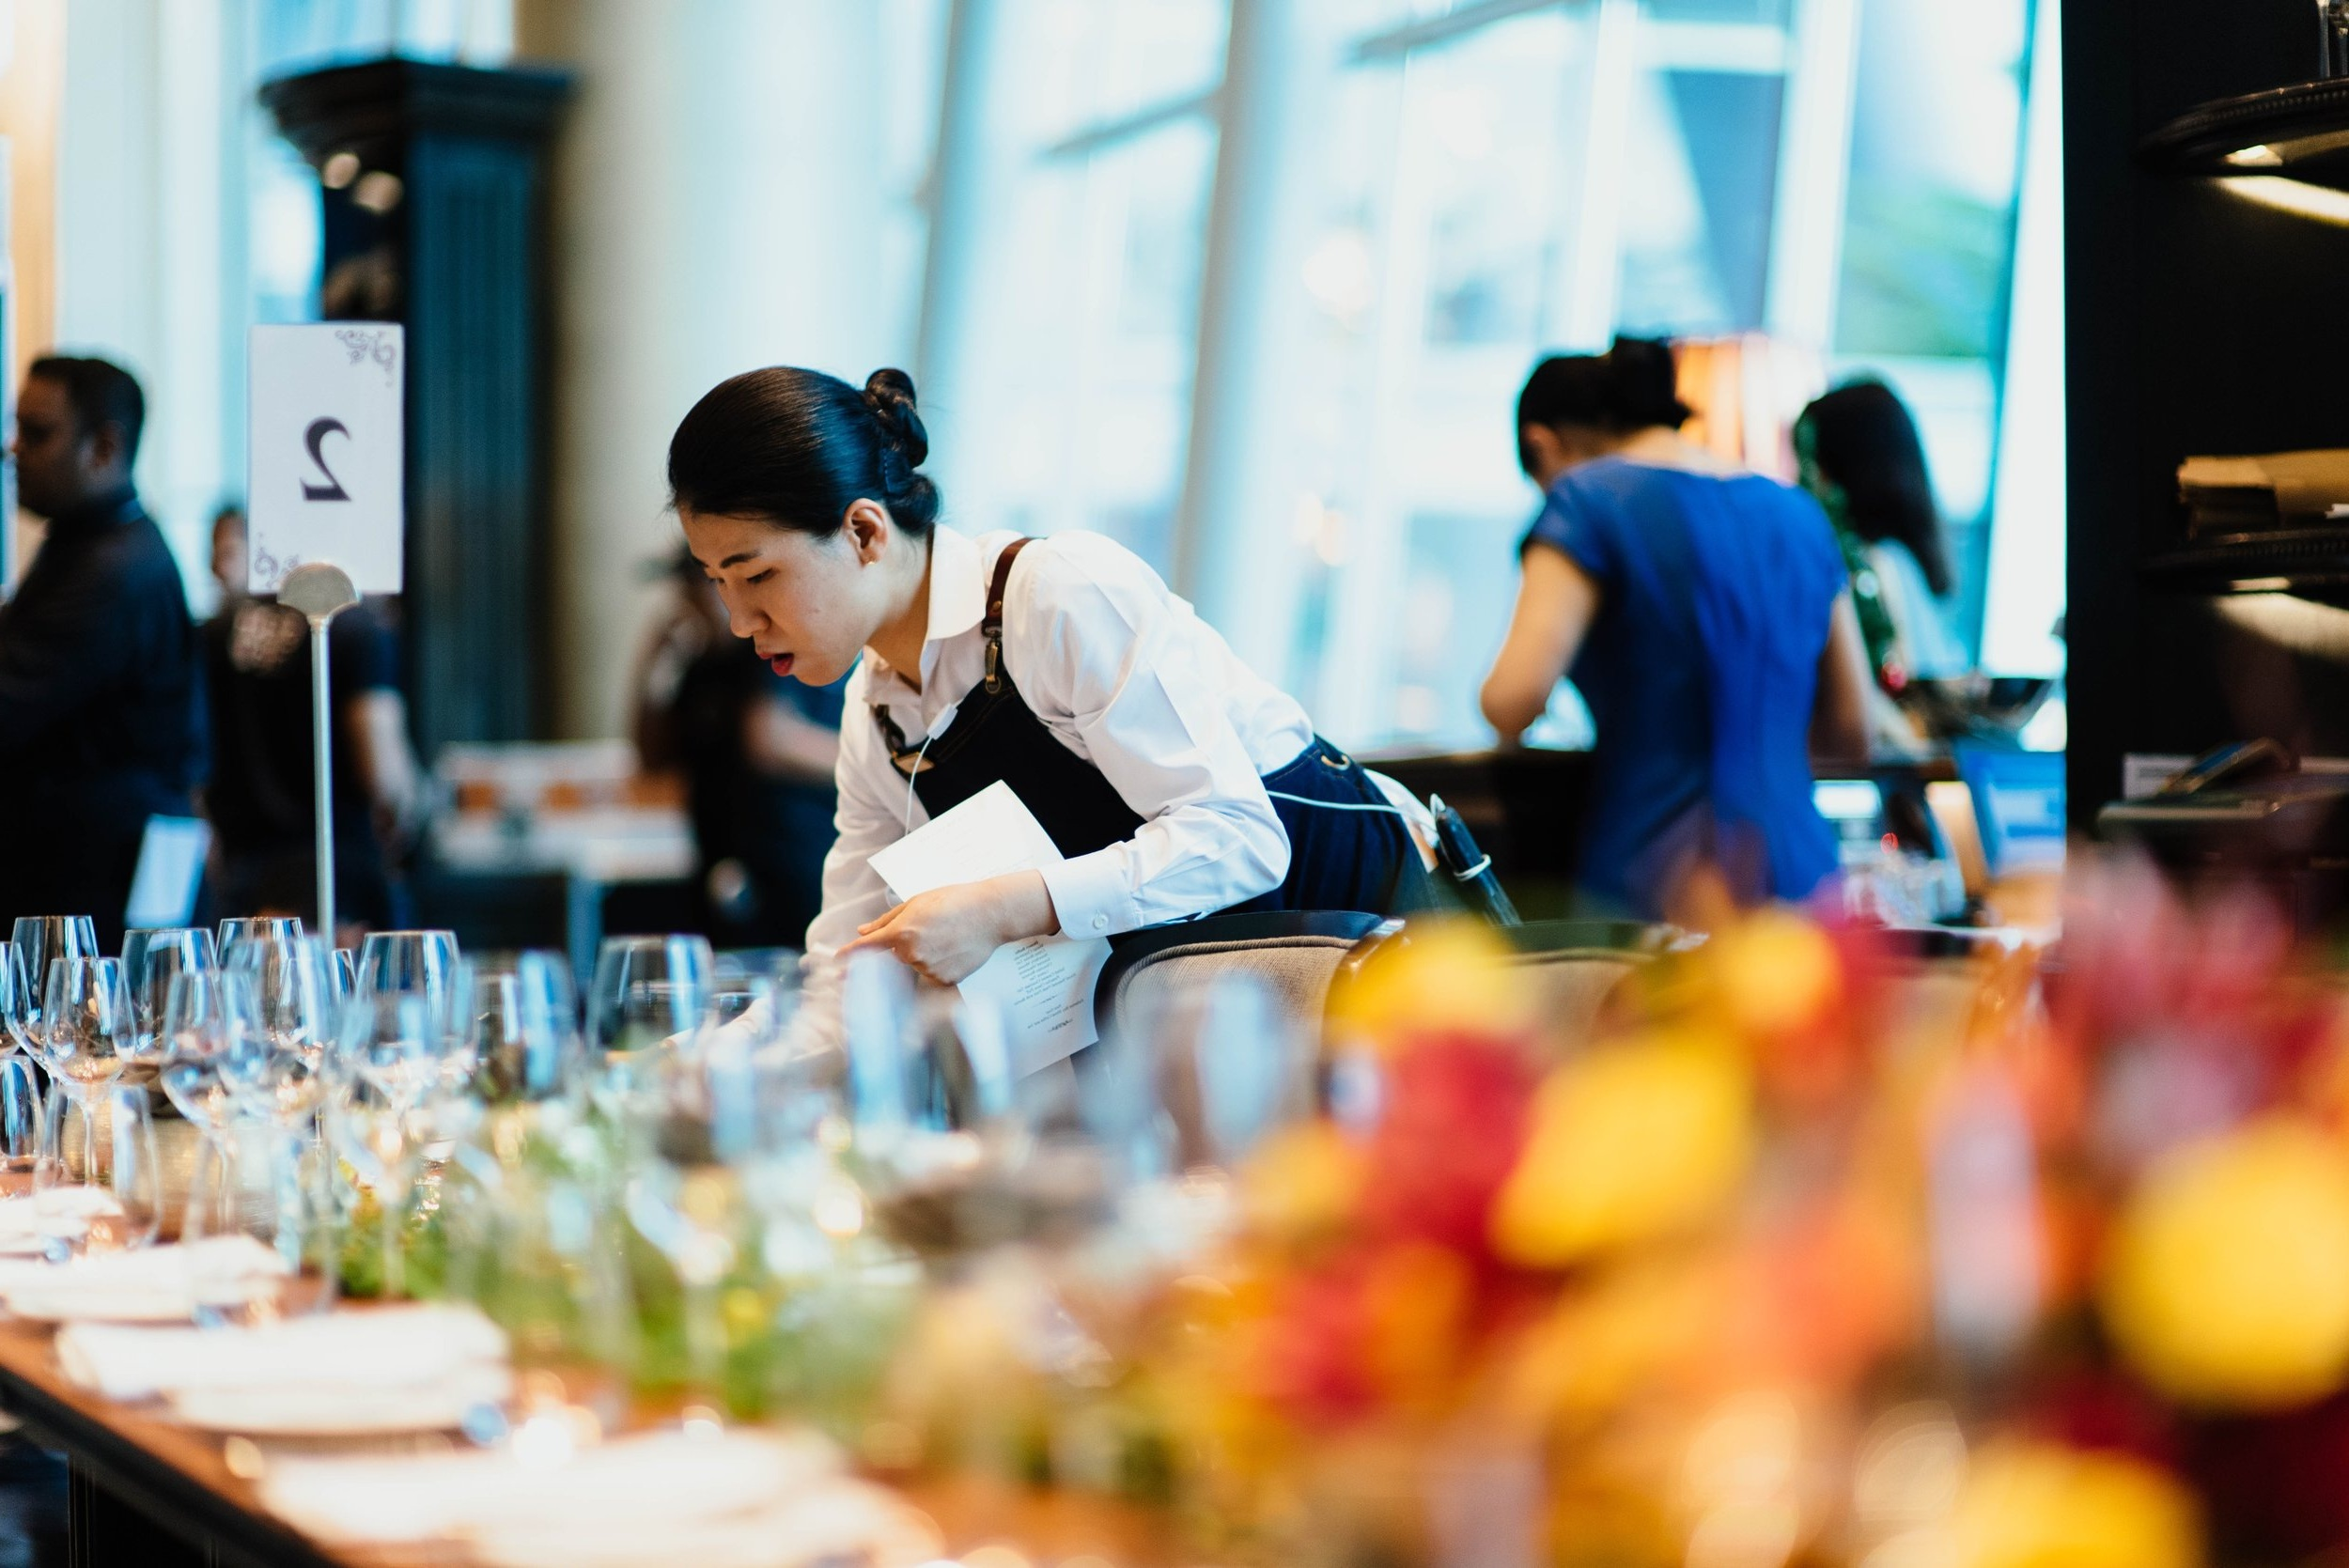 Catering & Beverage Your Way - Flexible Policies & Delicious Options When Dinner & Drinks Take Center Stage.